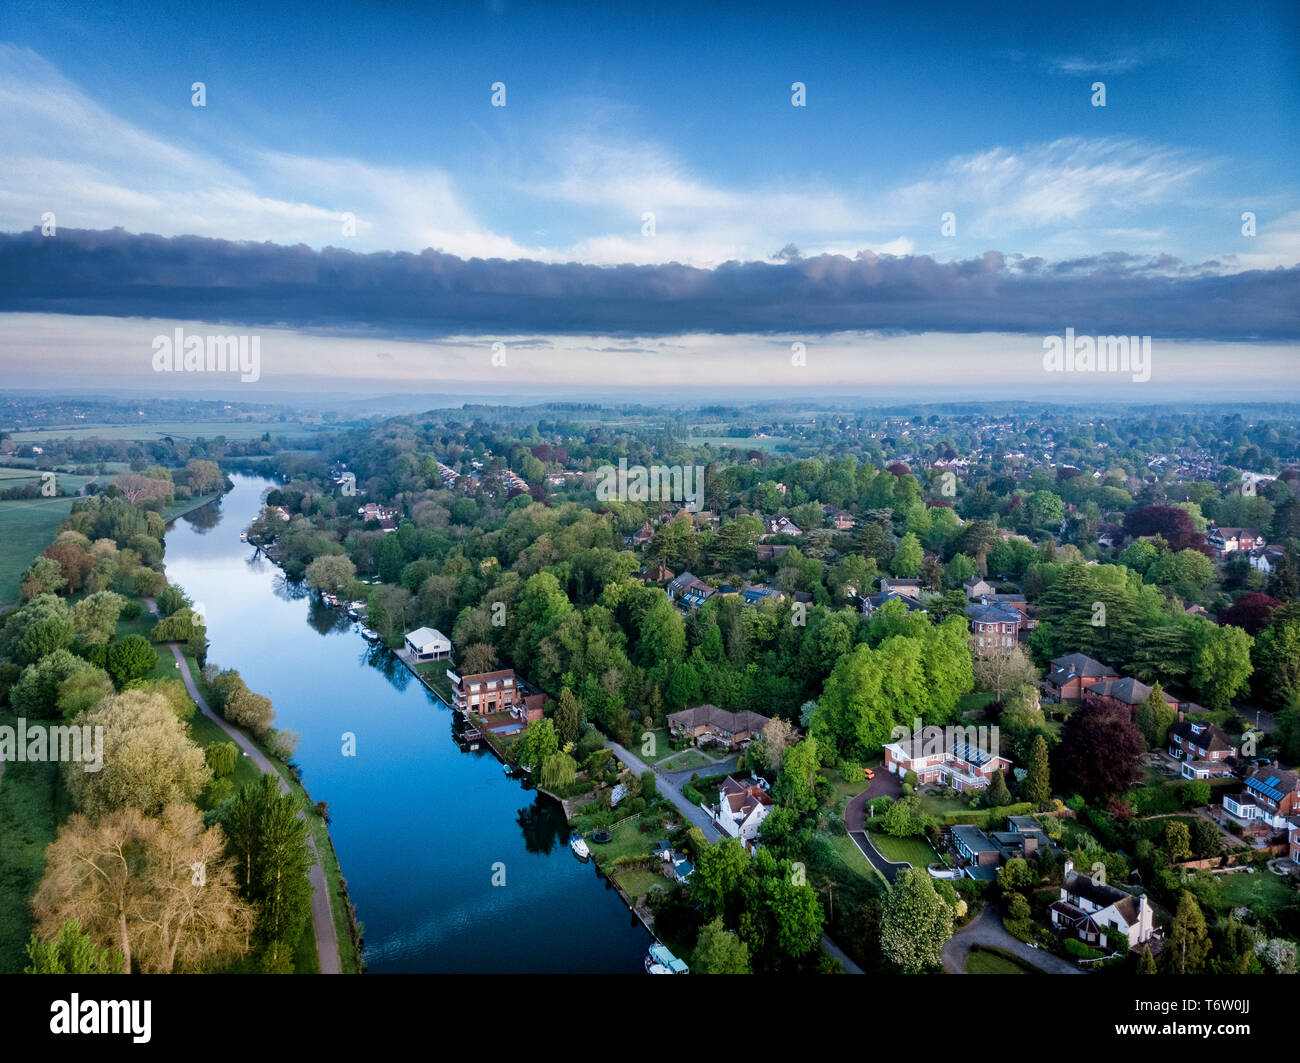 aerial-photograph-of-reading-berkshire-uk-taken-at-sunrise-including-the-river-thames-showing-caversham-and-surrounding-countryside-looking-west-T6W0JJ.jpg